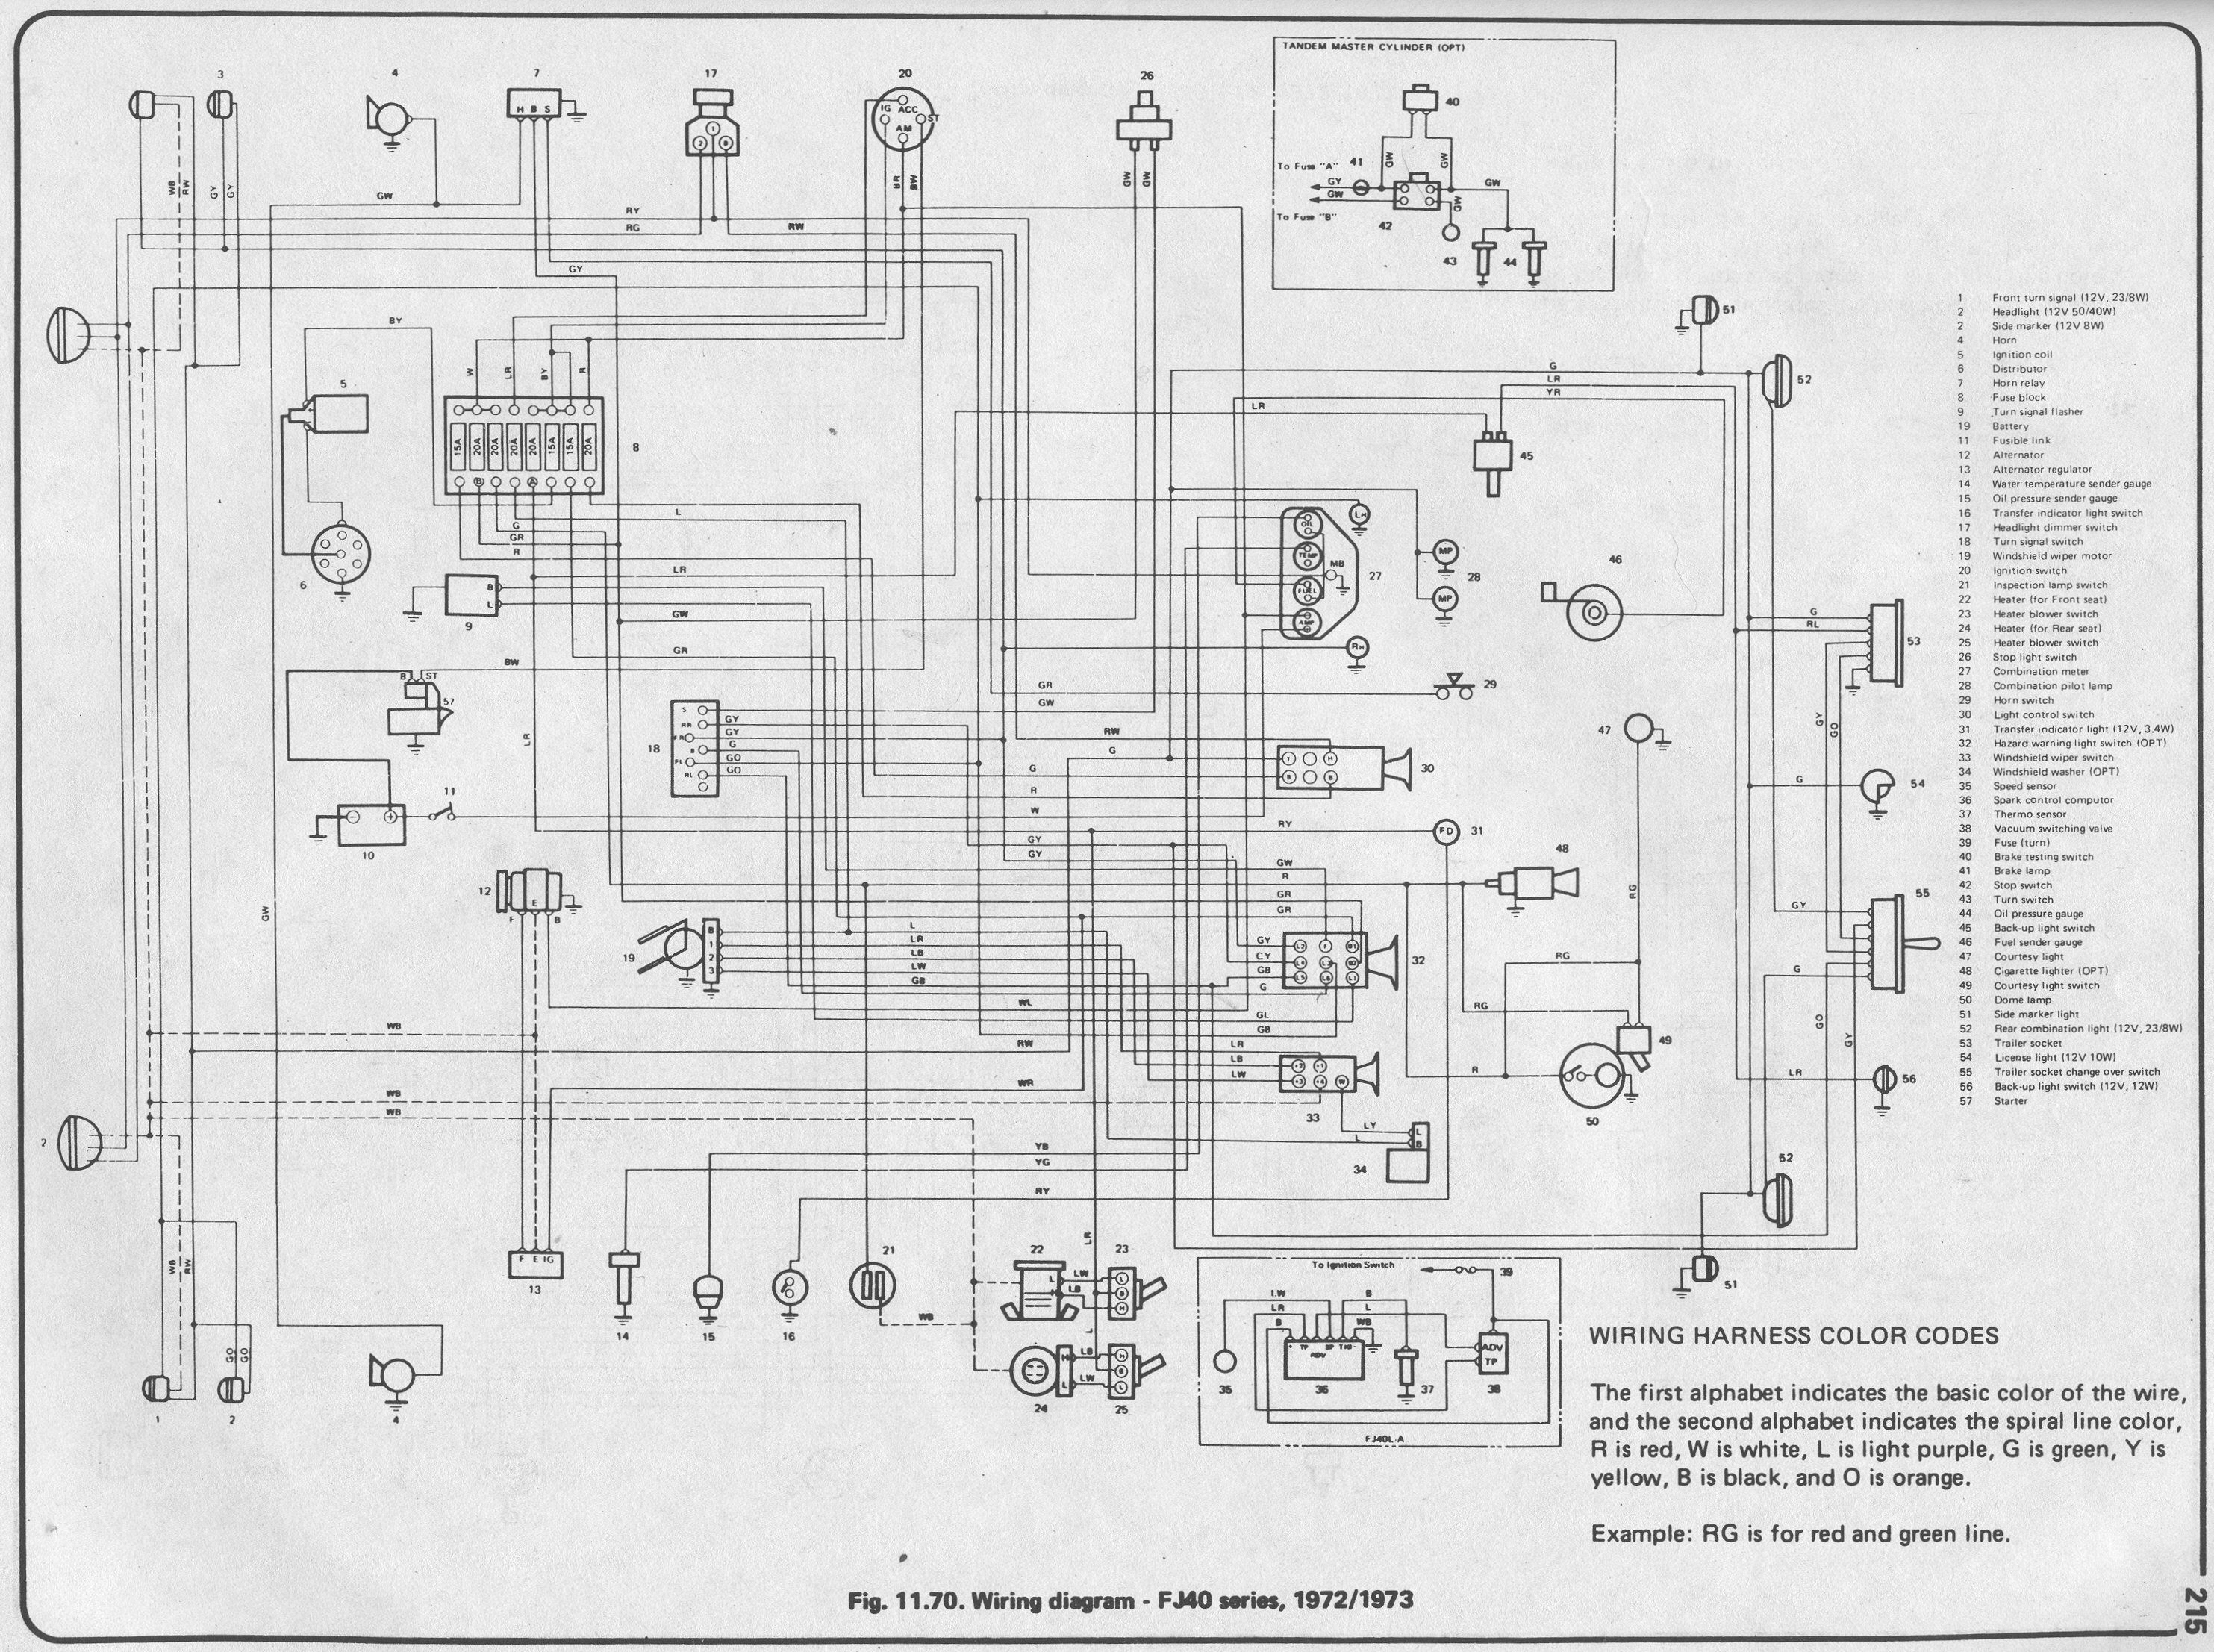 Coolerman S Electrical Schematic And Fsm File Retrieval